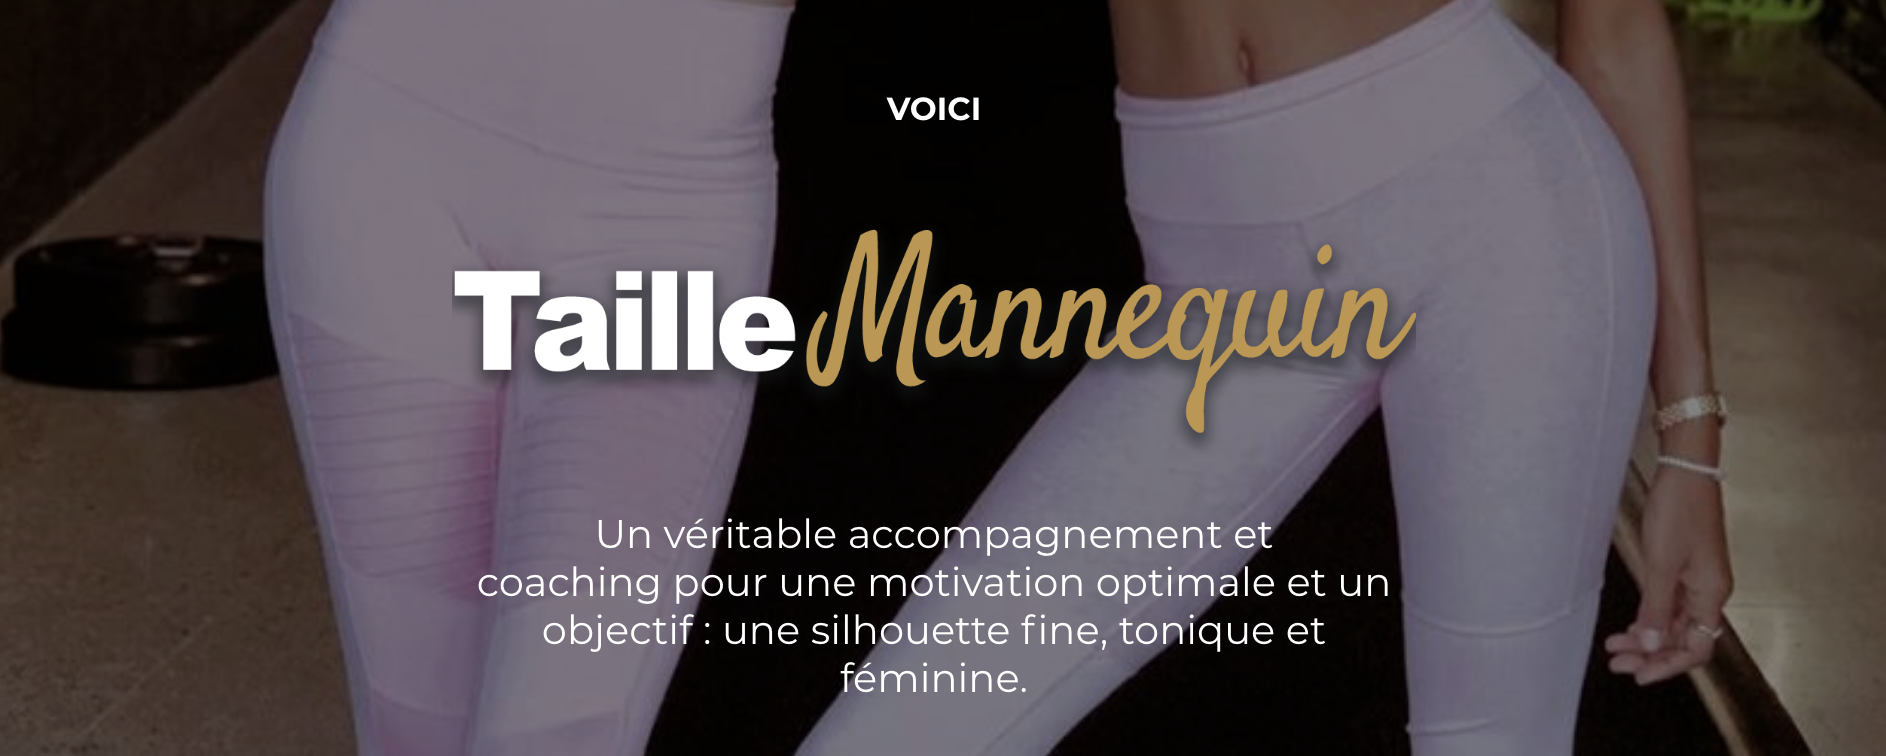 programme taille mannequin